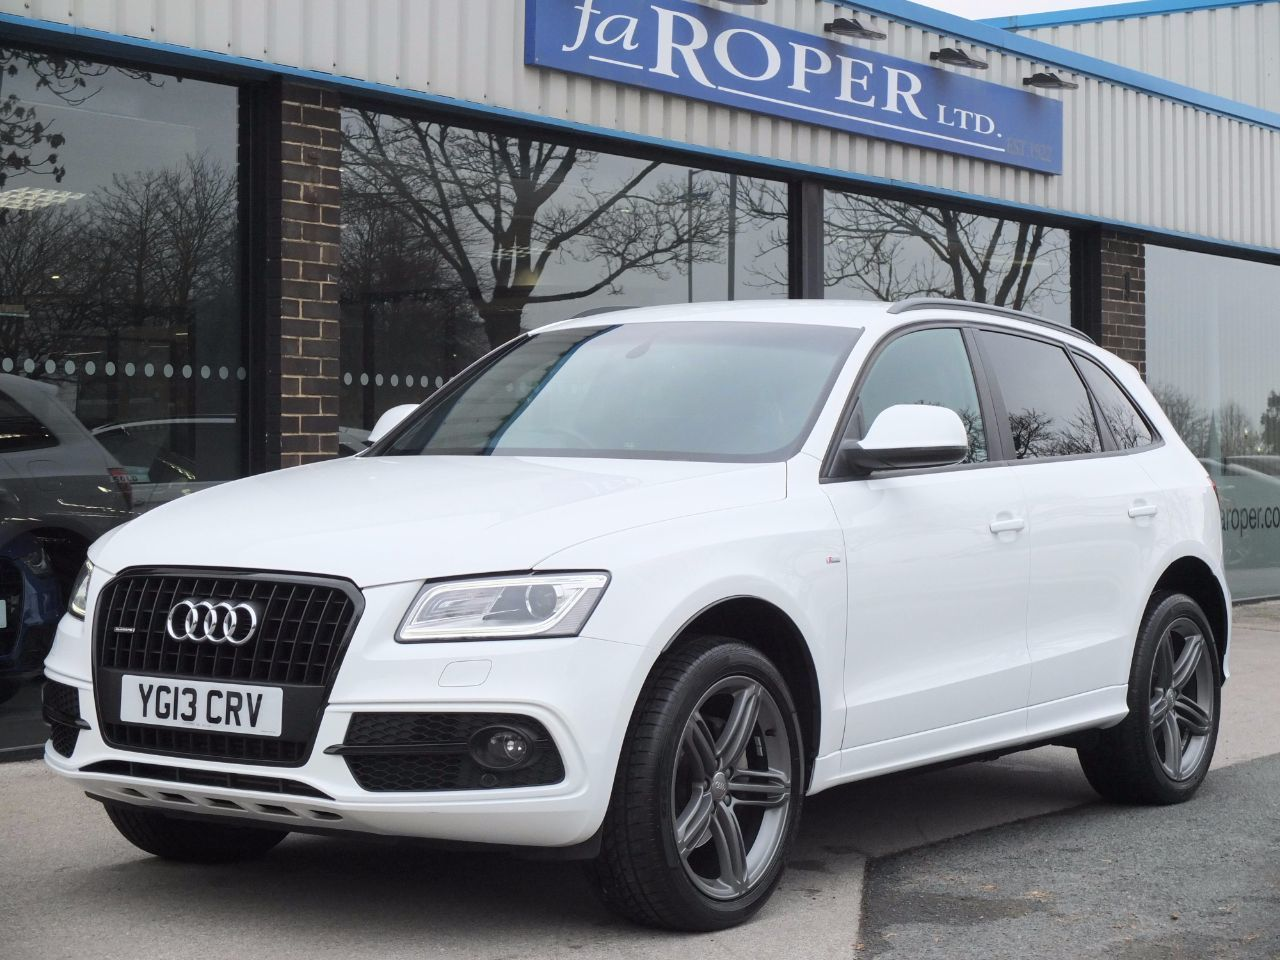 Audi Q5 2.0 TDI quattro S Line Plus S Tronic 177ps (Tech Pack) Estate Diesel Ibis WhiteAudi Q5 2.0 TDI quattro S Line Plus S Tronic 177ps (Tech Pack) Estate Diesel Ibis White at fa Roper Ltd Bradford